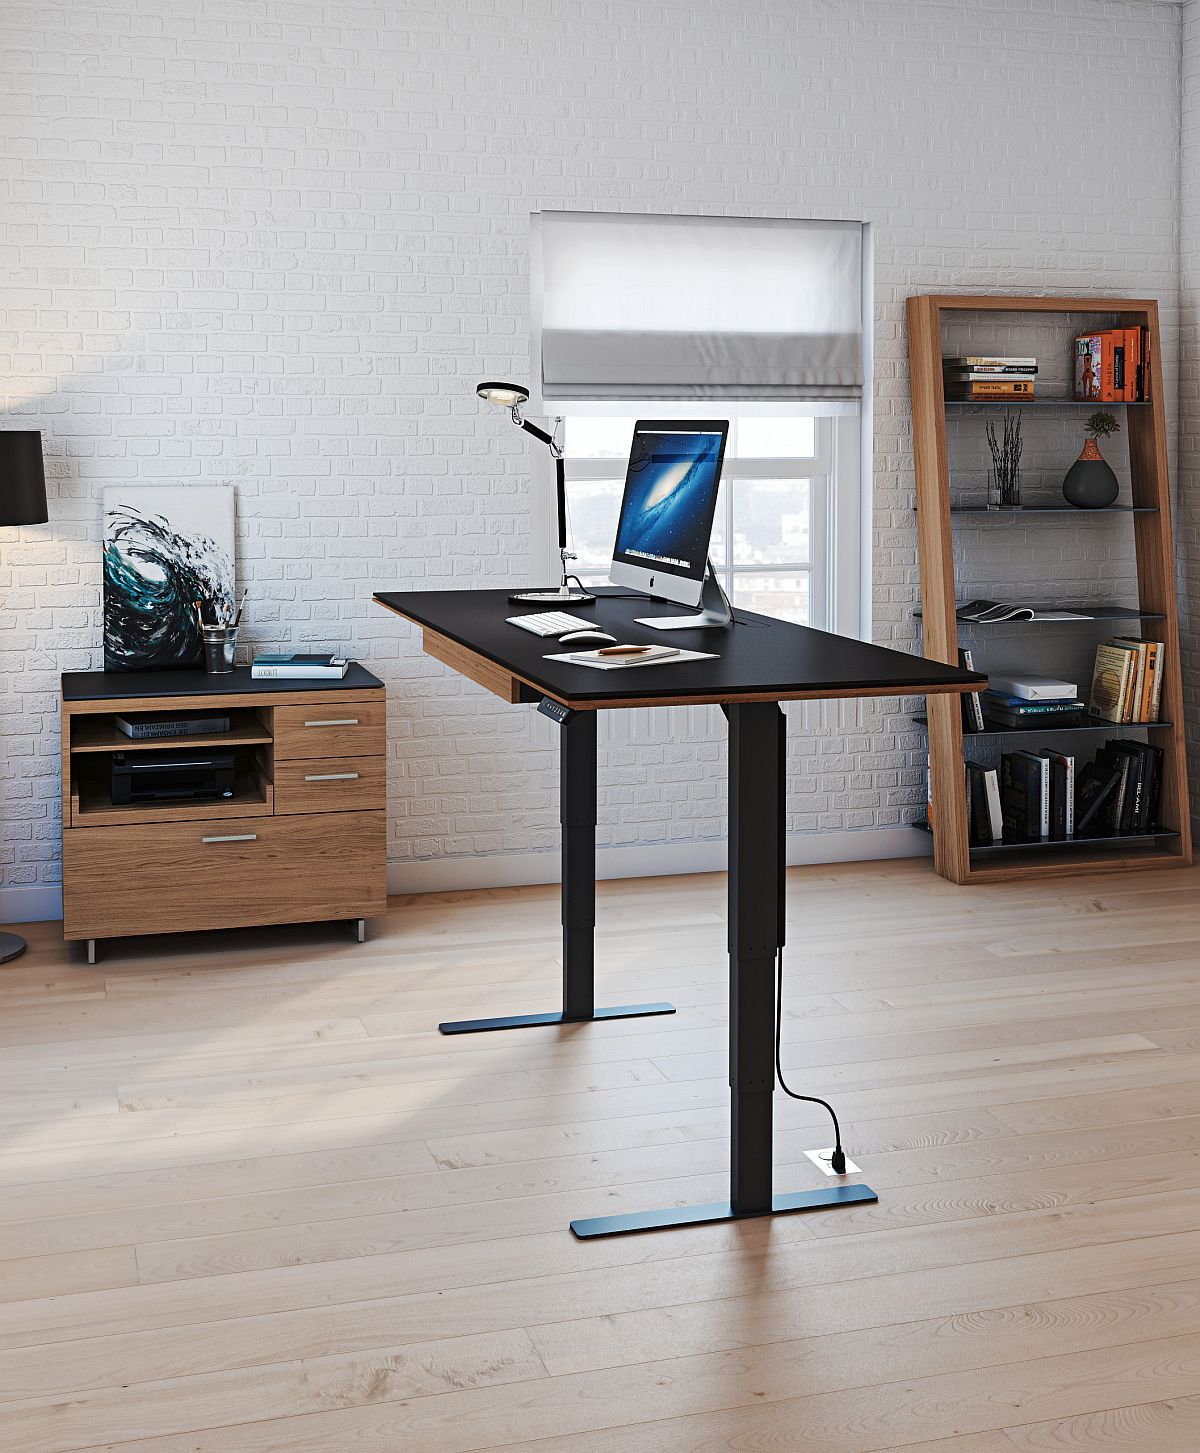 A-sit-stand-desk-like-the-SEQUEL-Lift-Desk-gives-you-a-healthier-and-more-active-lifestyle-72472